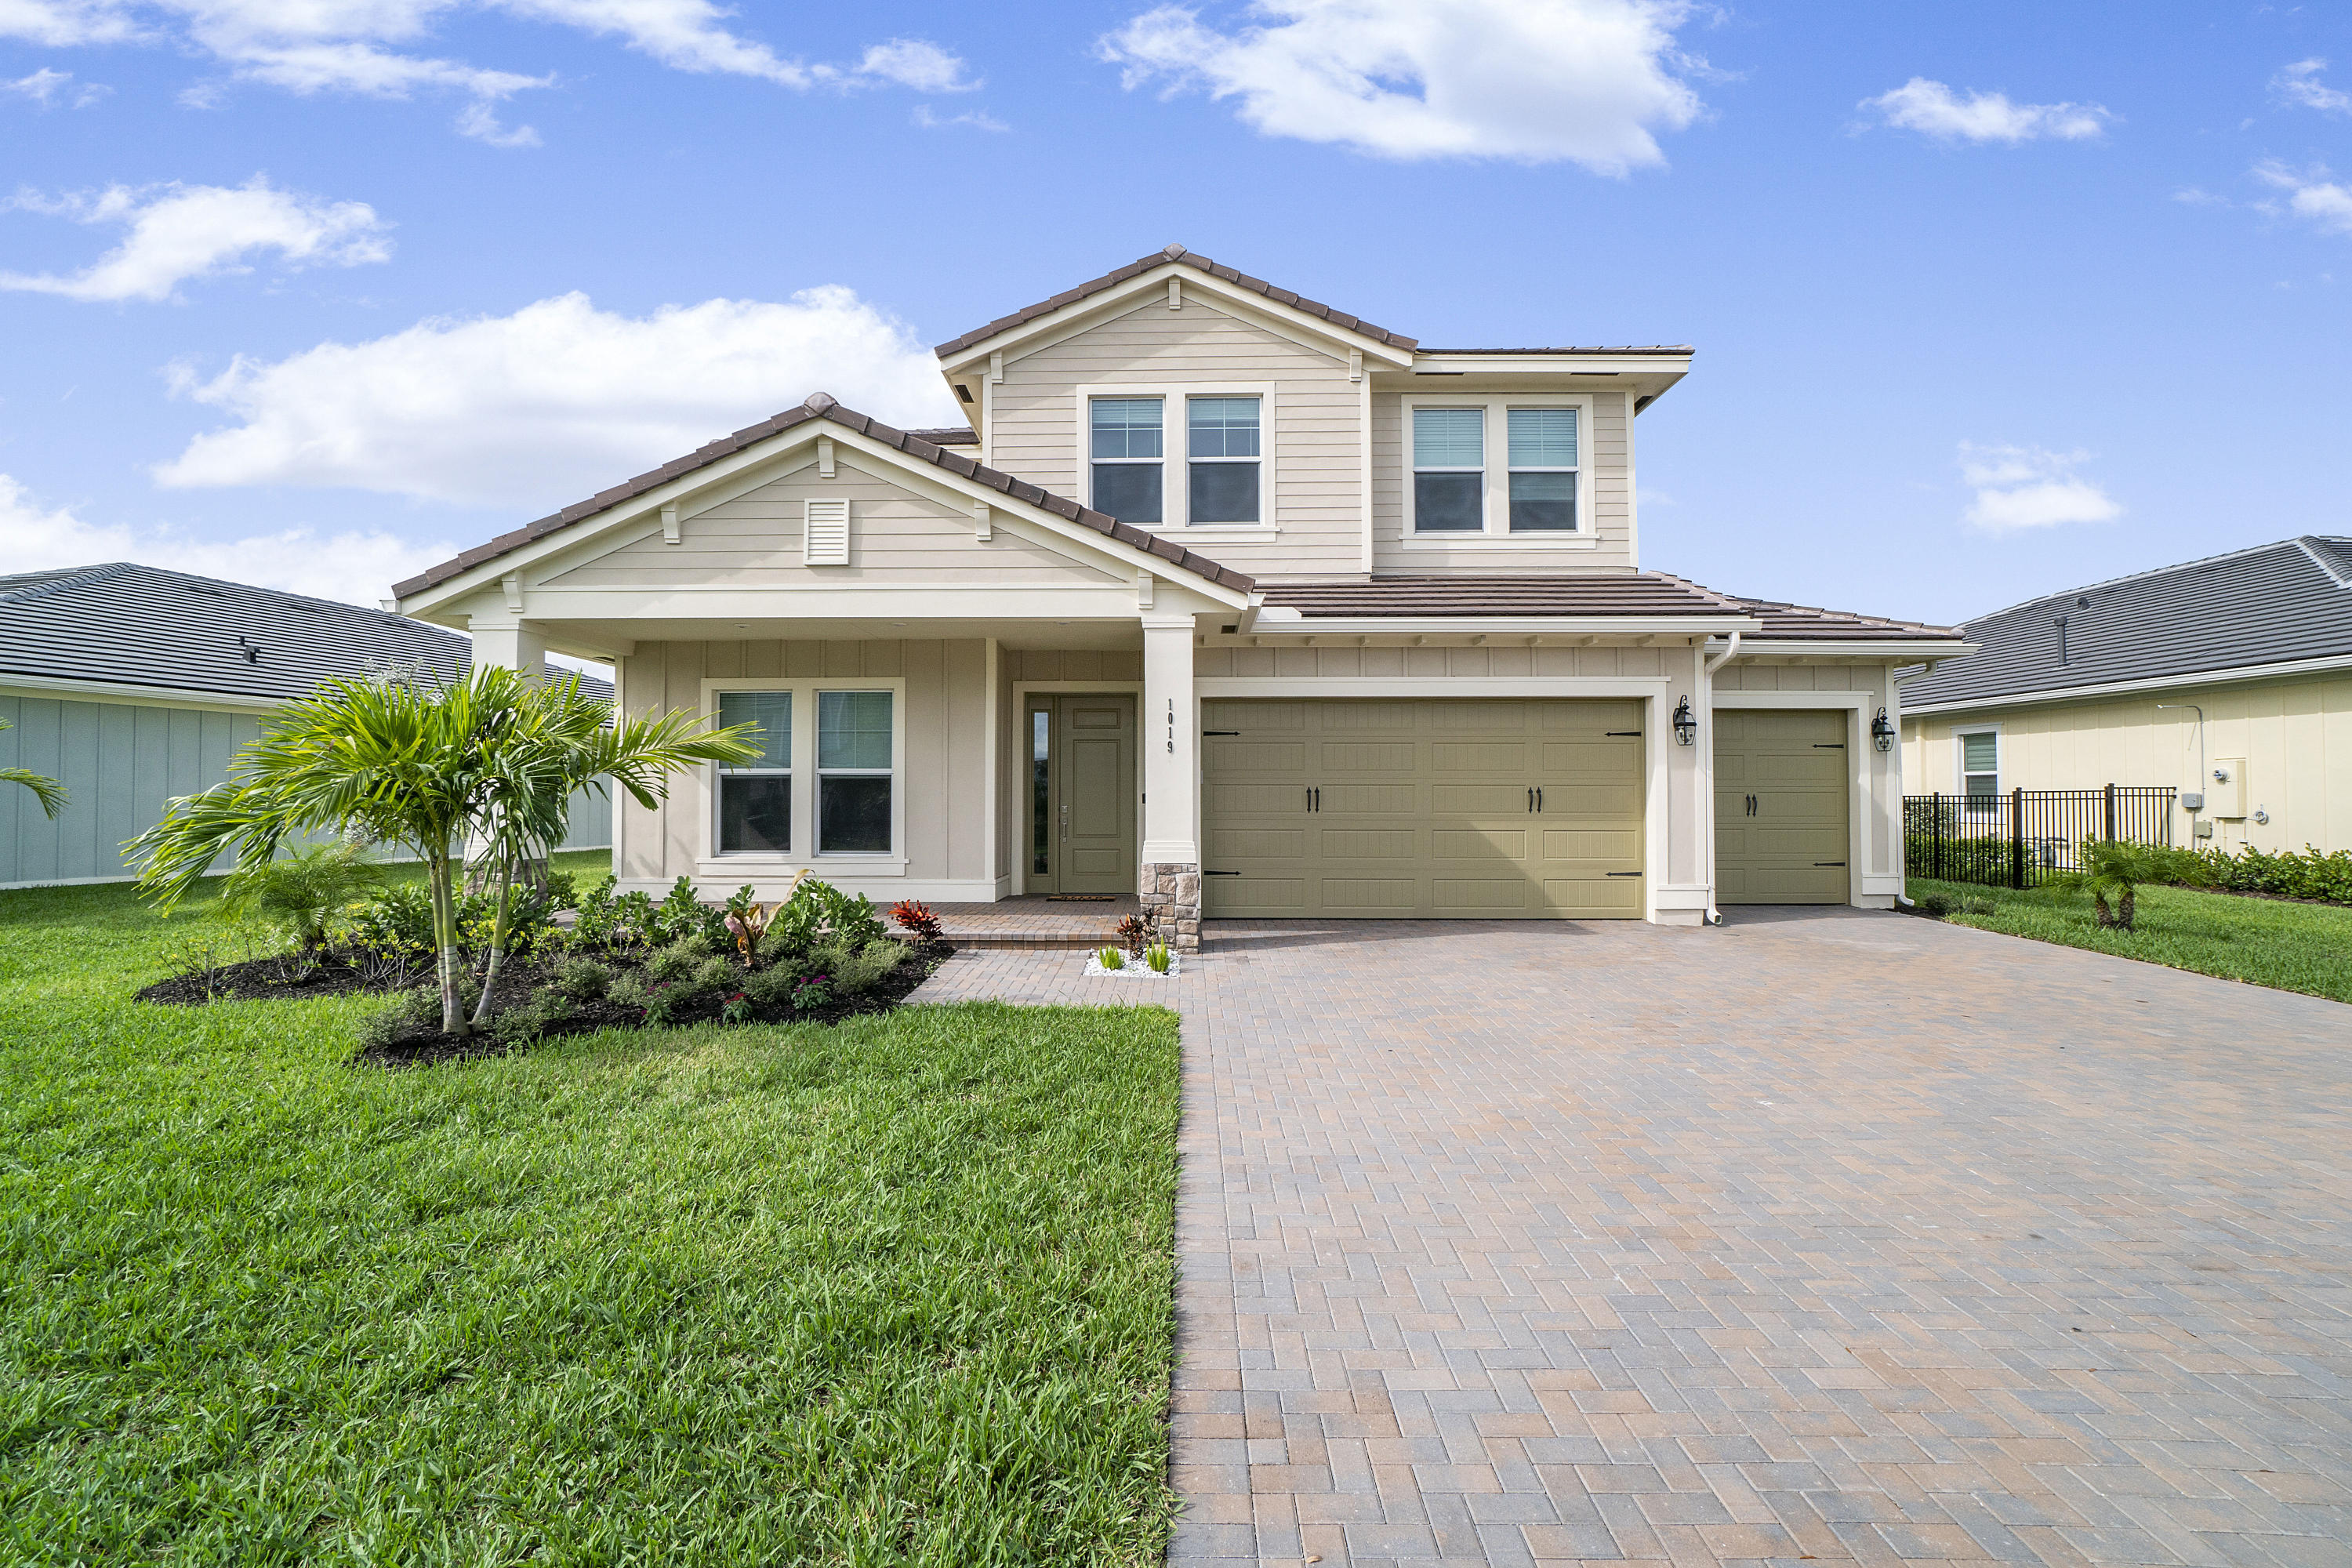 1019 Sweetgrass Street - Loxahatchee, Florida